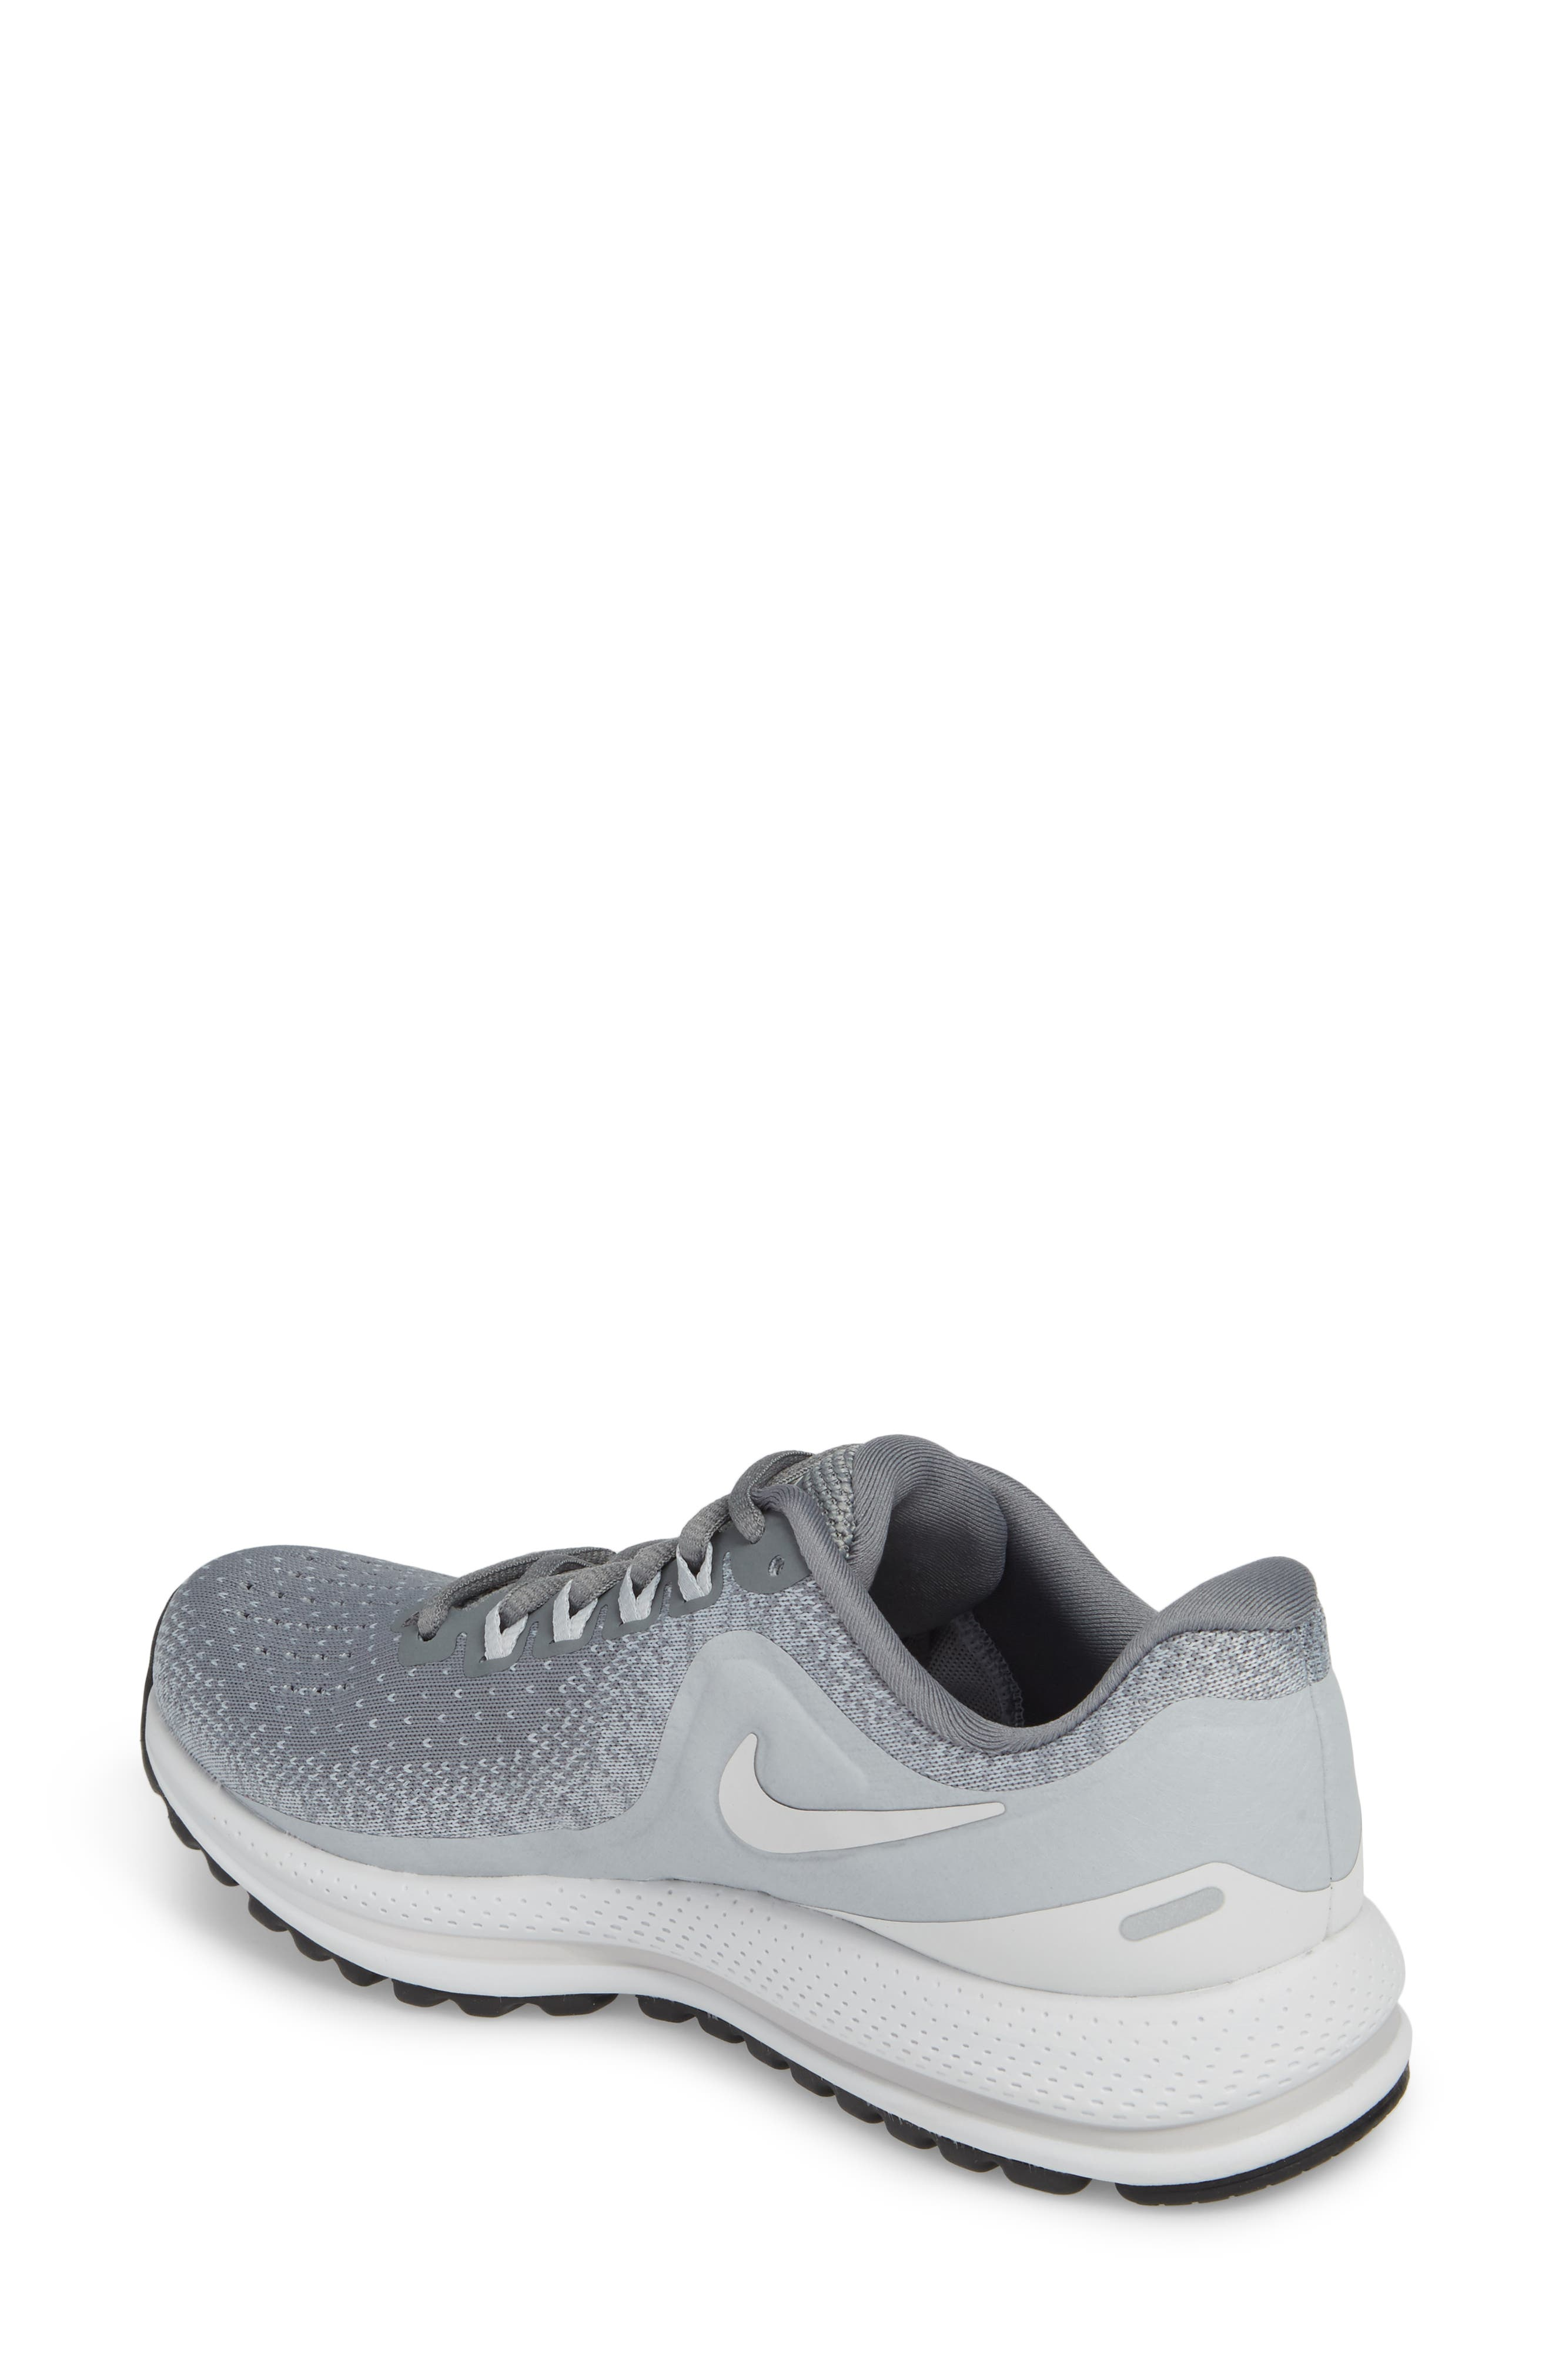 Air Zoom Vomero 13 Running Shoe,                             Alternate thumbnail 14, color,